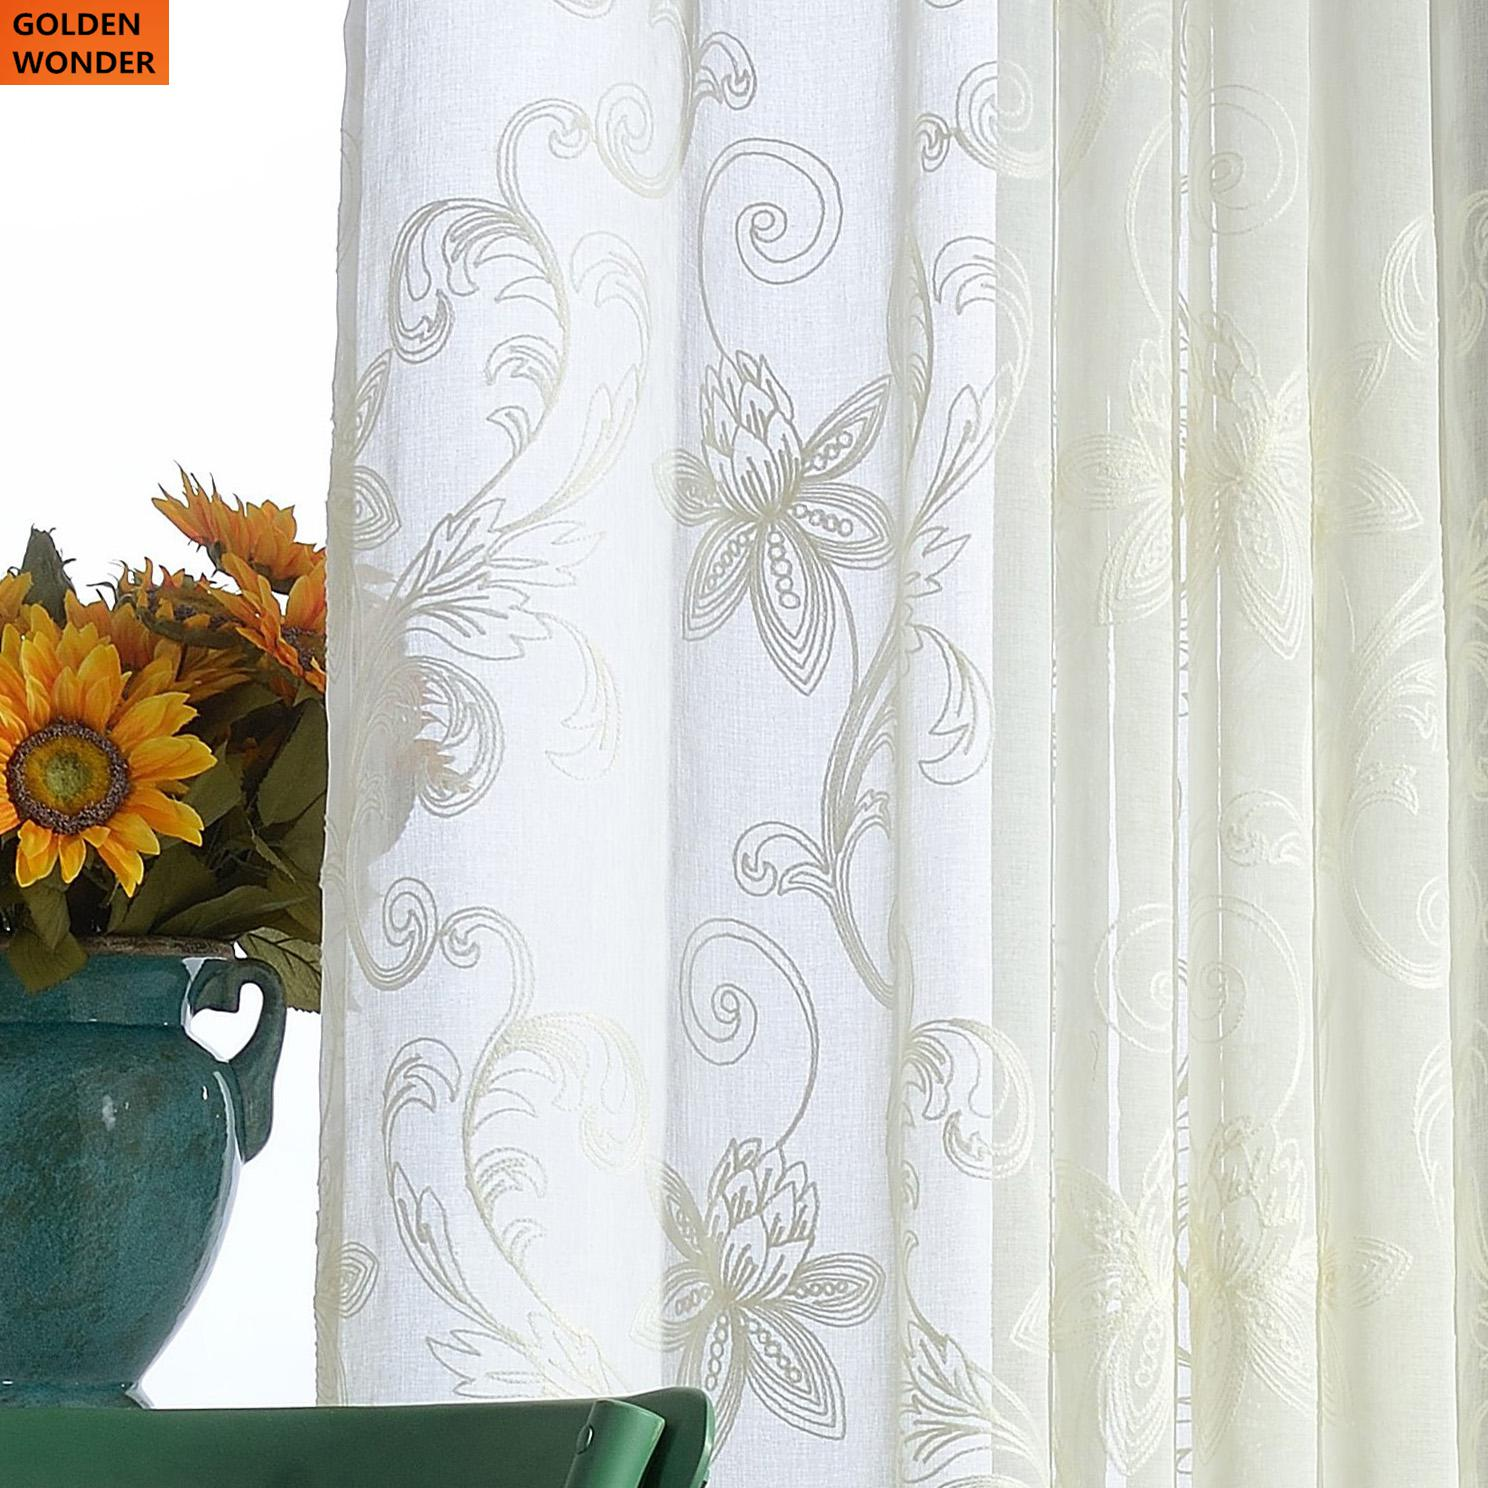 size images pretty sheer curtains with of curtain ideas ebayfabric shower used on fabric at full sofa liners target